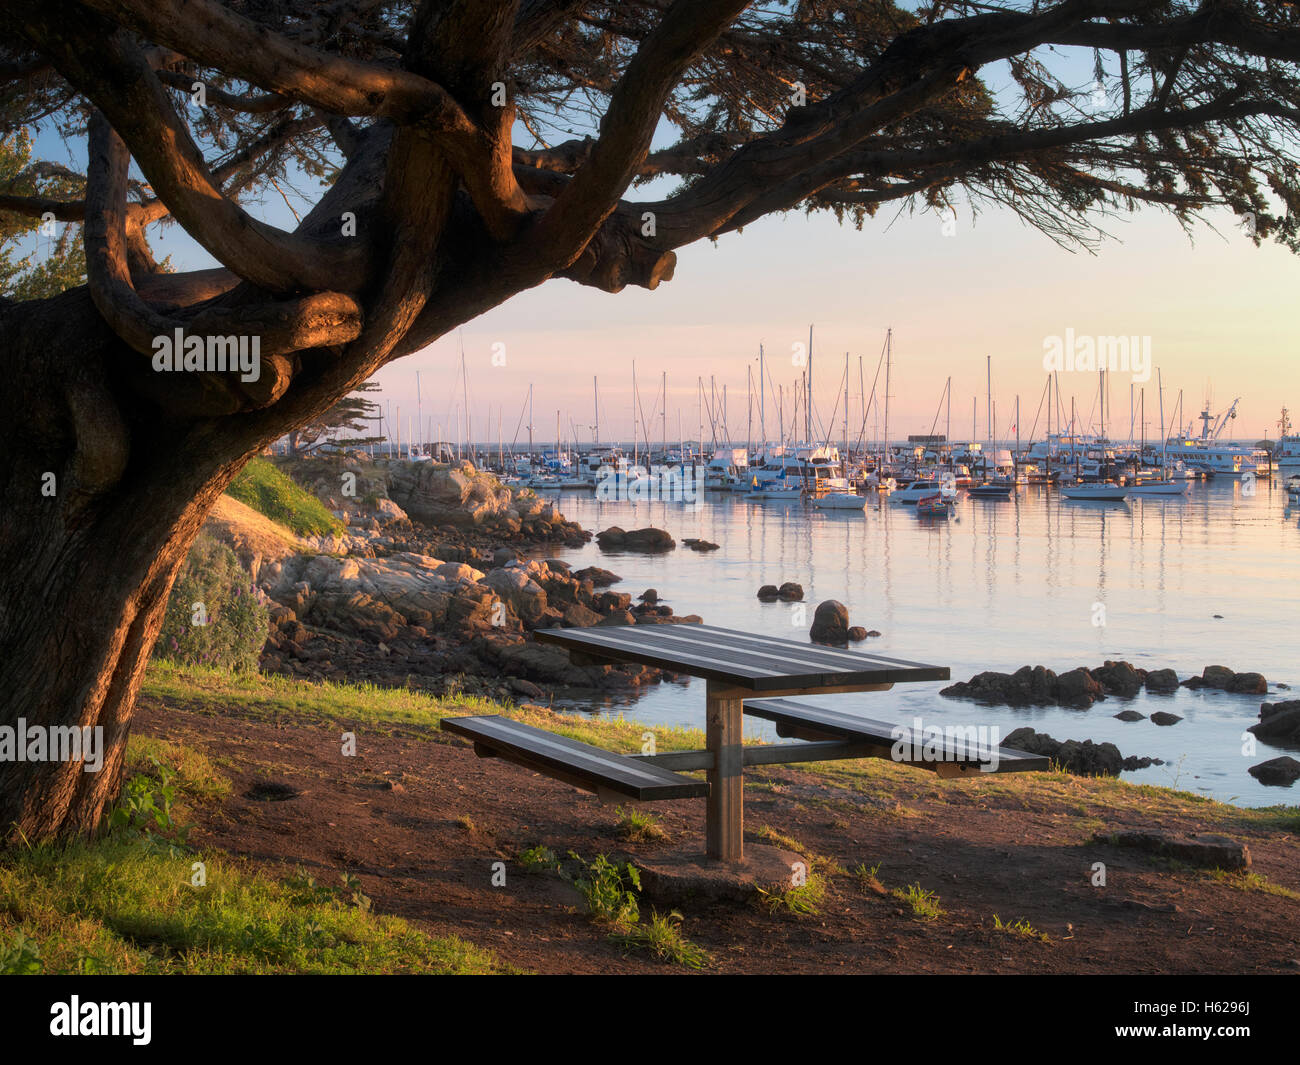 Monterey Harbor and Marina, and table with sunrise. Monterey, California - Stock Image